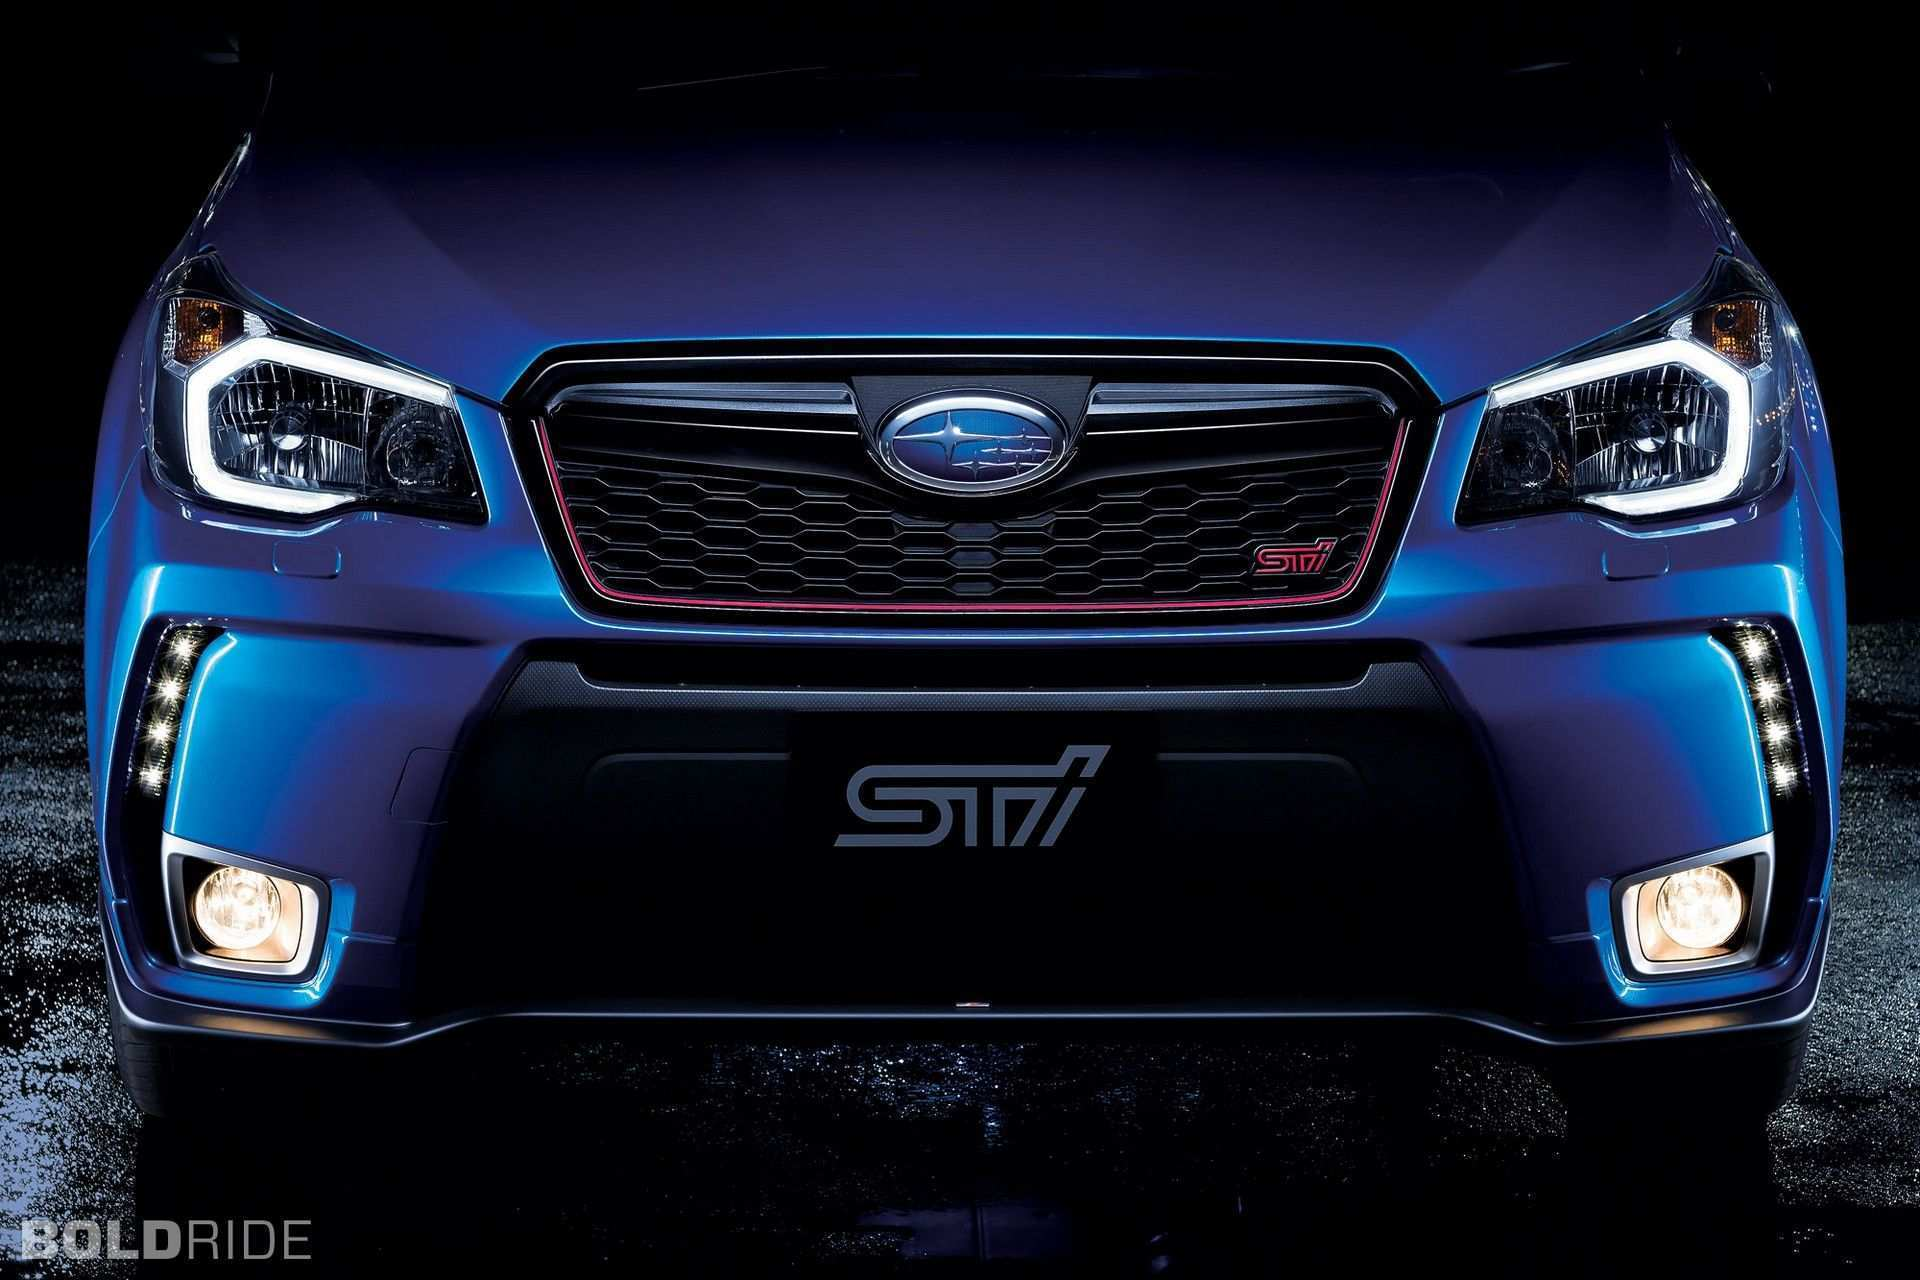 68 Concept of 2020 Subaru Forester Hybrid Pricing by 2020 Subaru Forester Hybrid